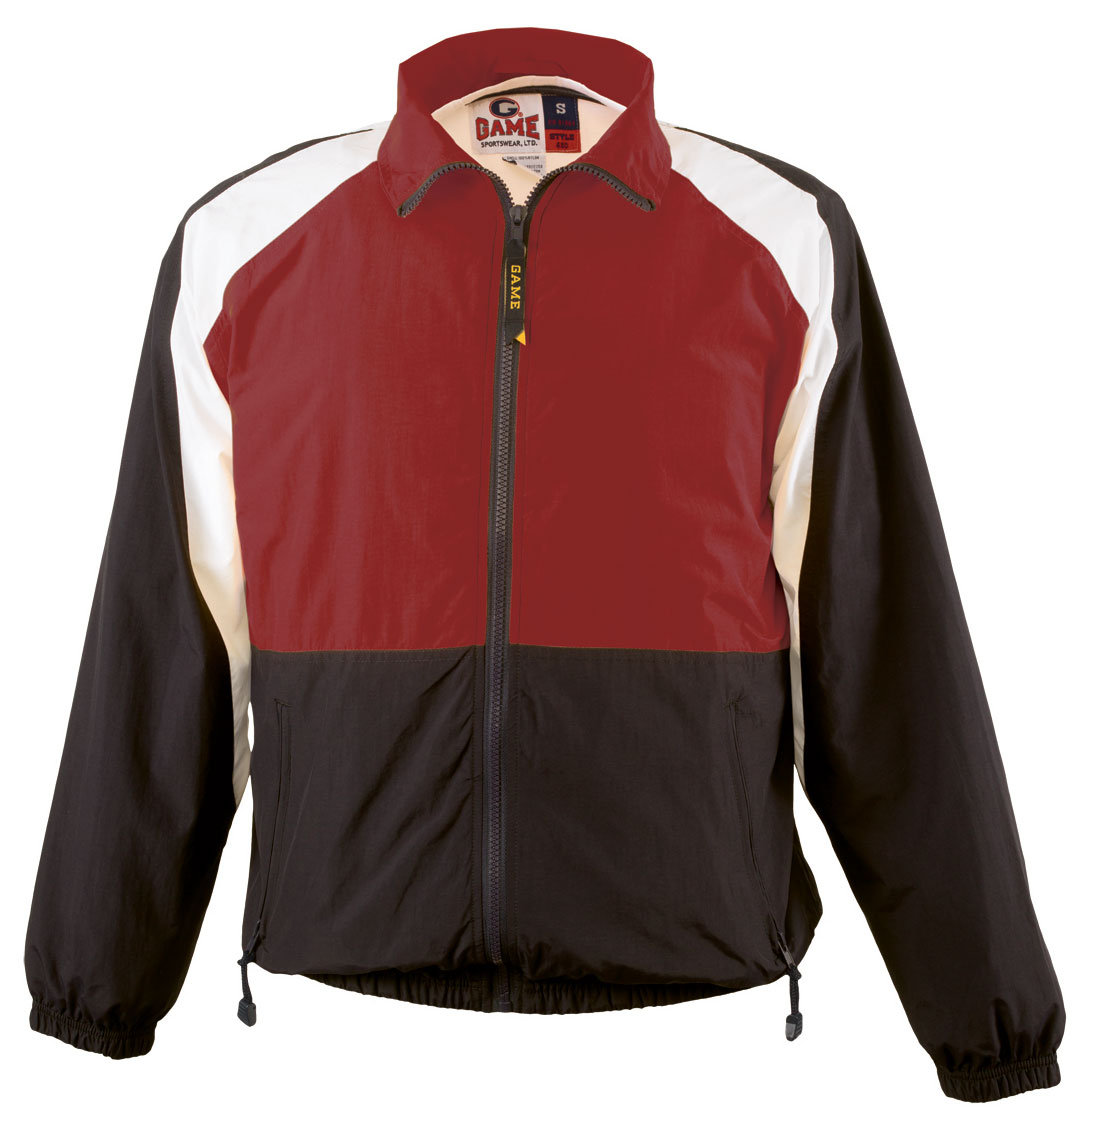 The Hampton Adult Warm-Up Jacket